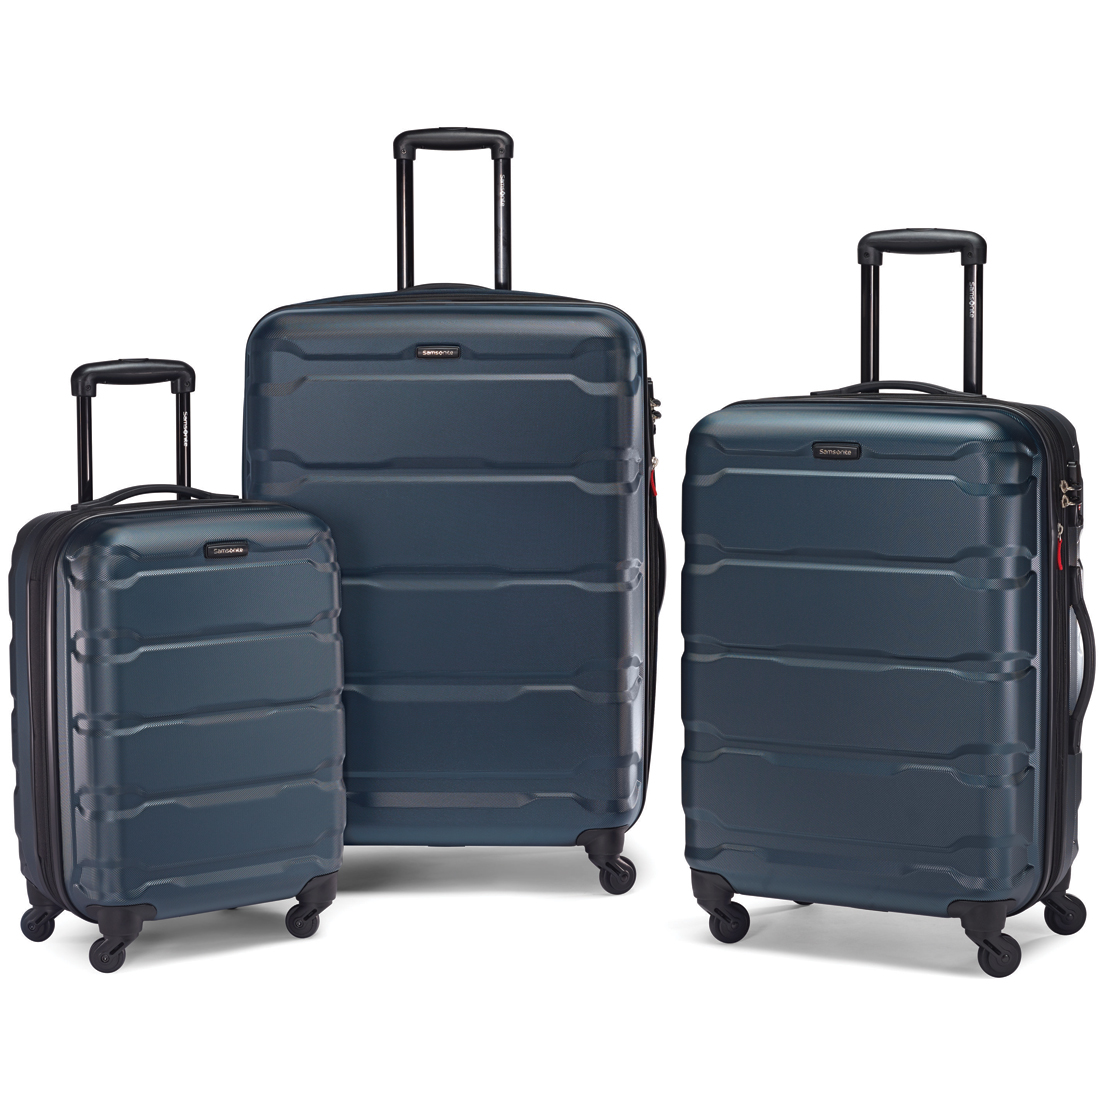 Samsonite-Omni-24-Inch-Hardside-Spinner-Luggage-Suitcase-Choose-Color thumbnail 39